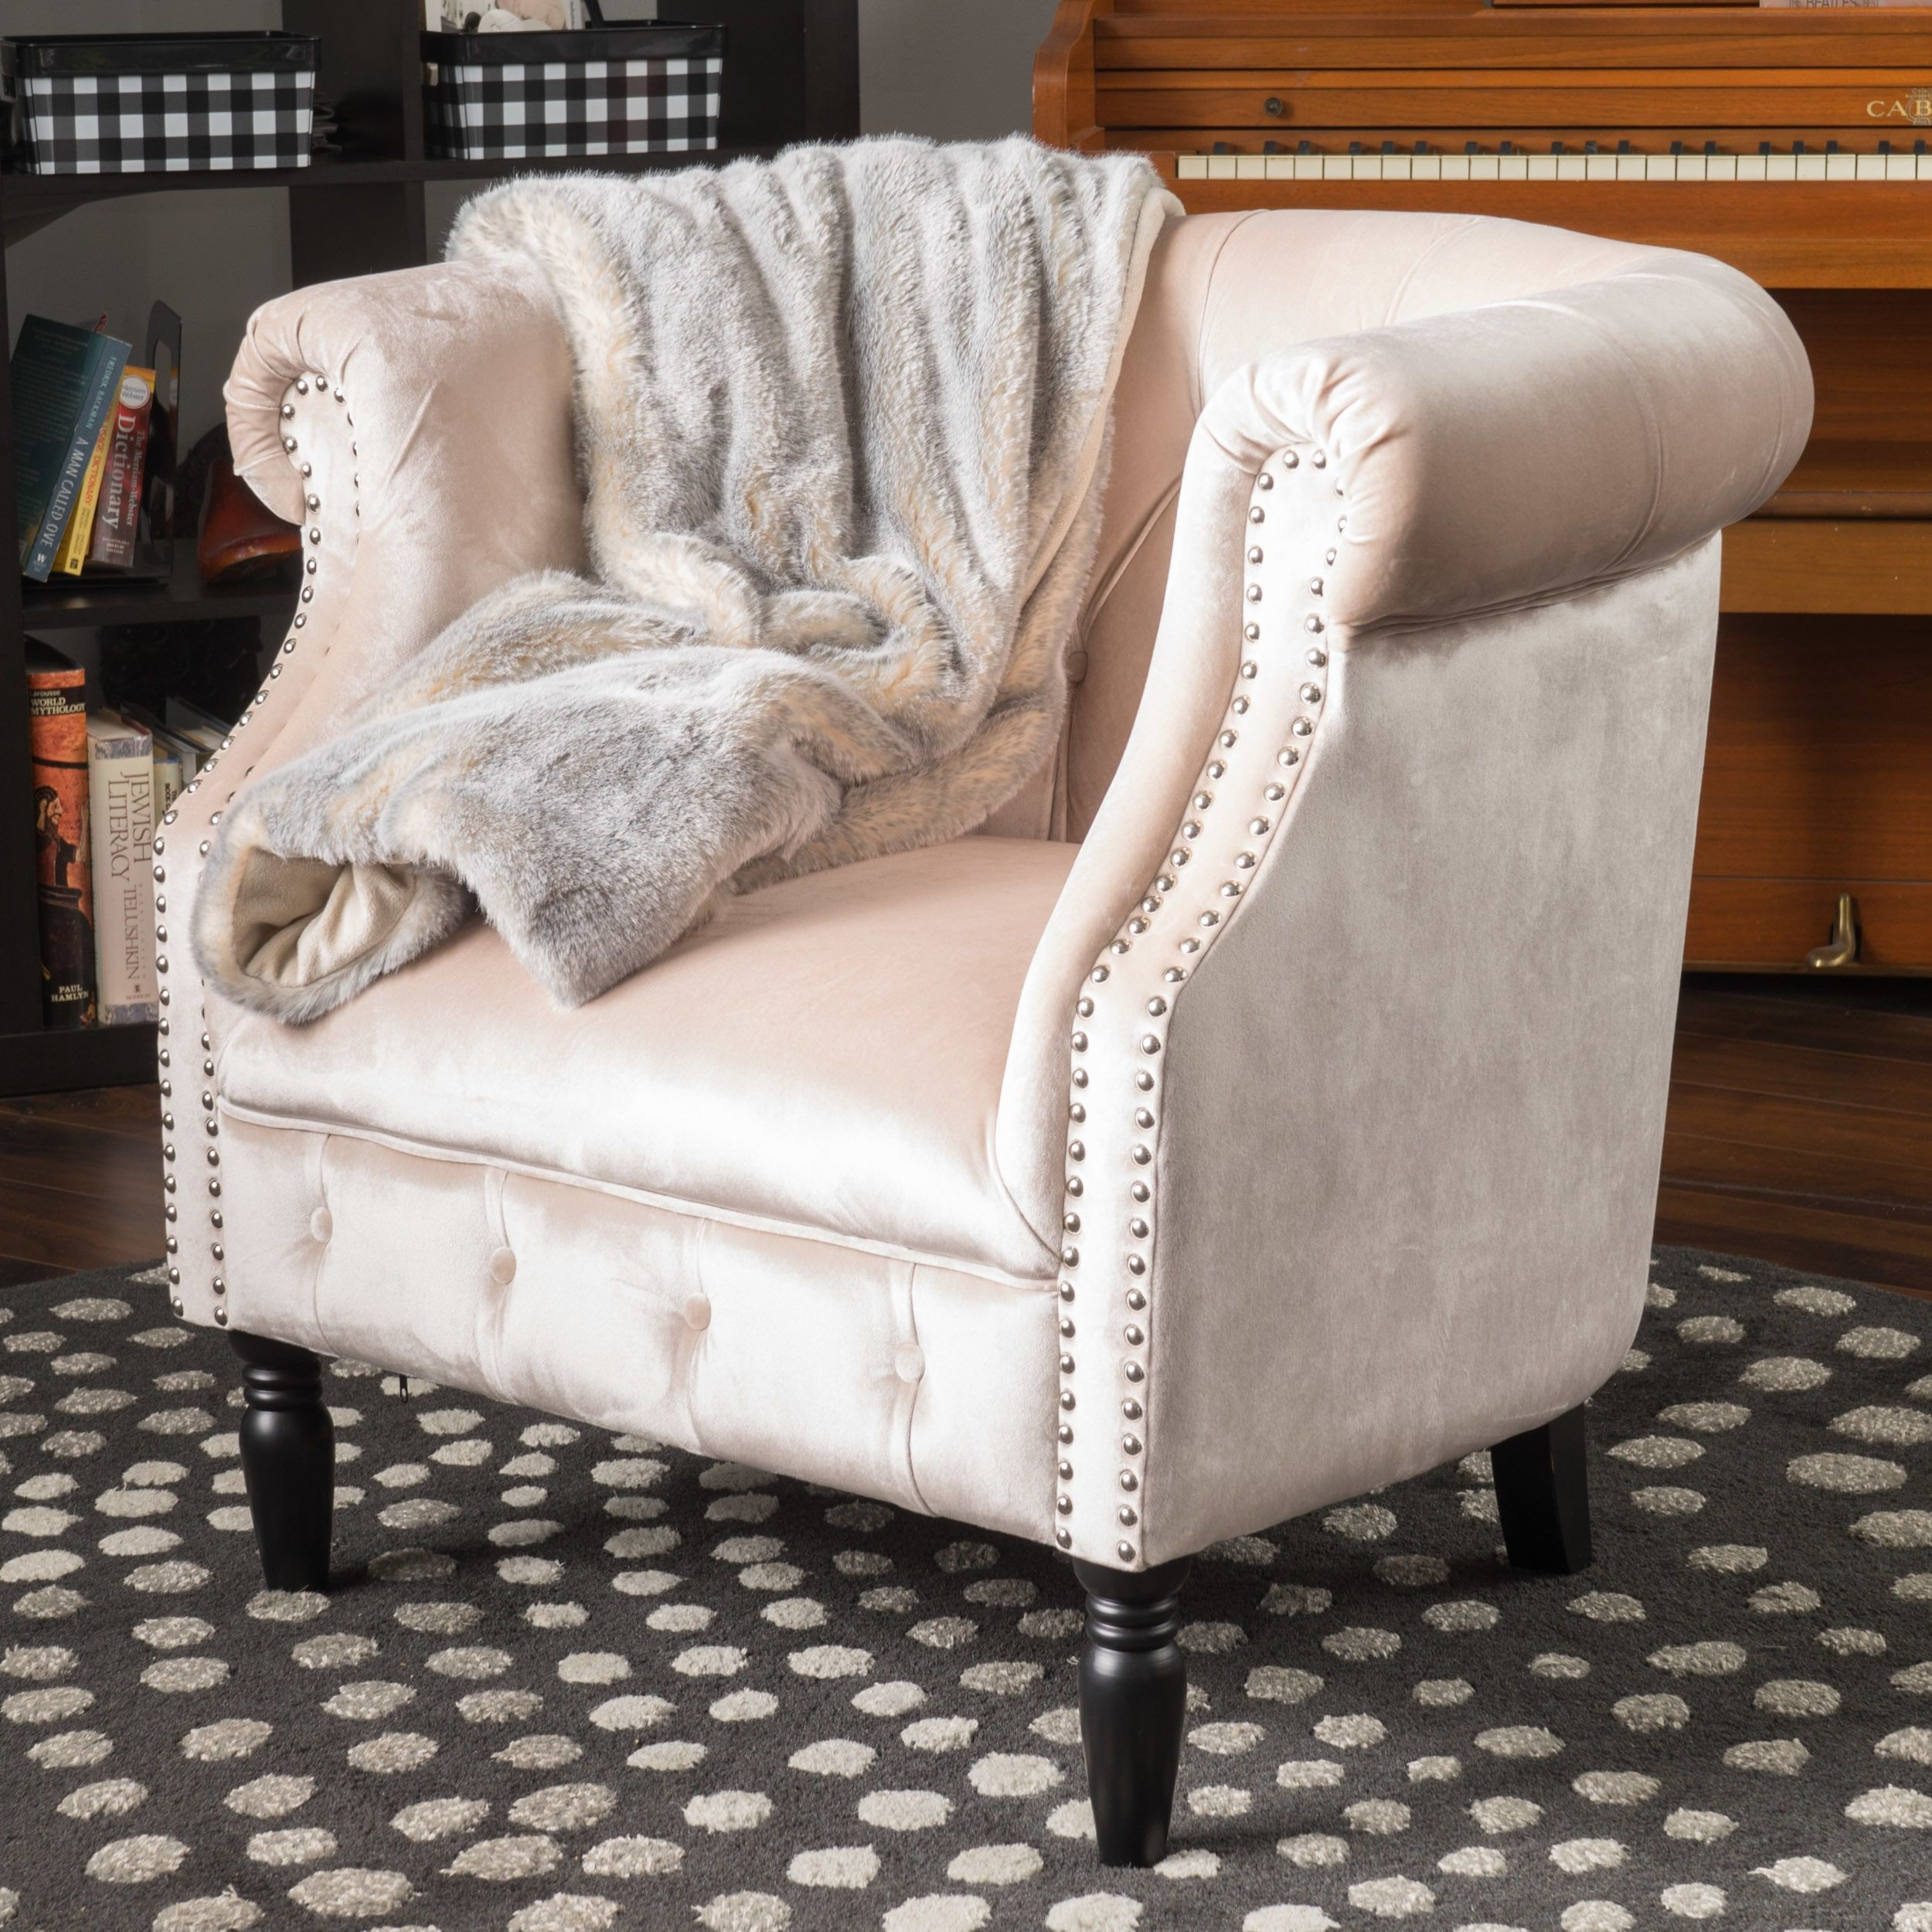 Pin On Chairs With Regard To Maubara Tufted Wingback Chairs (View 10 of 15)